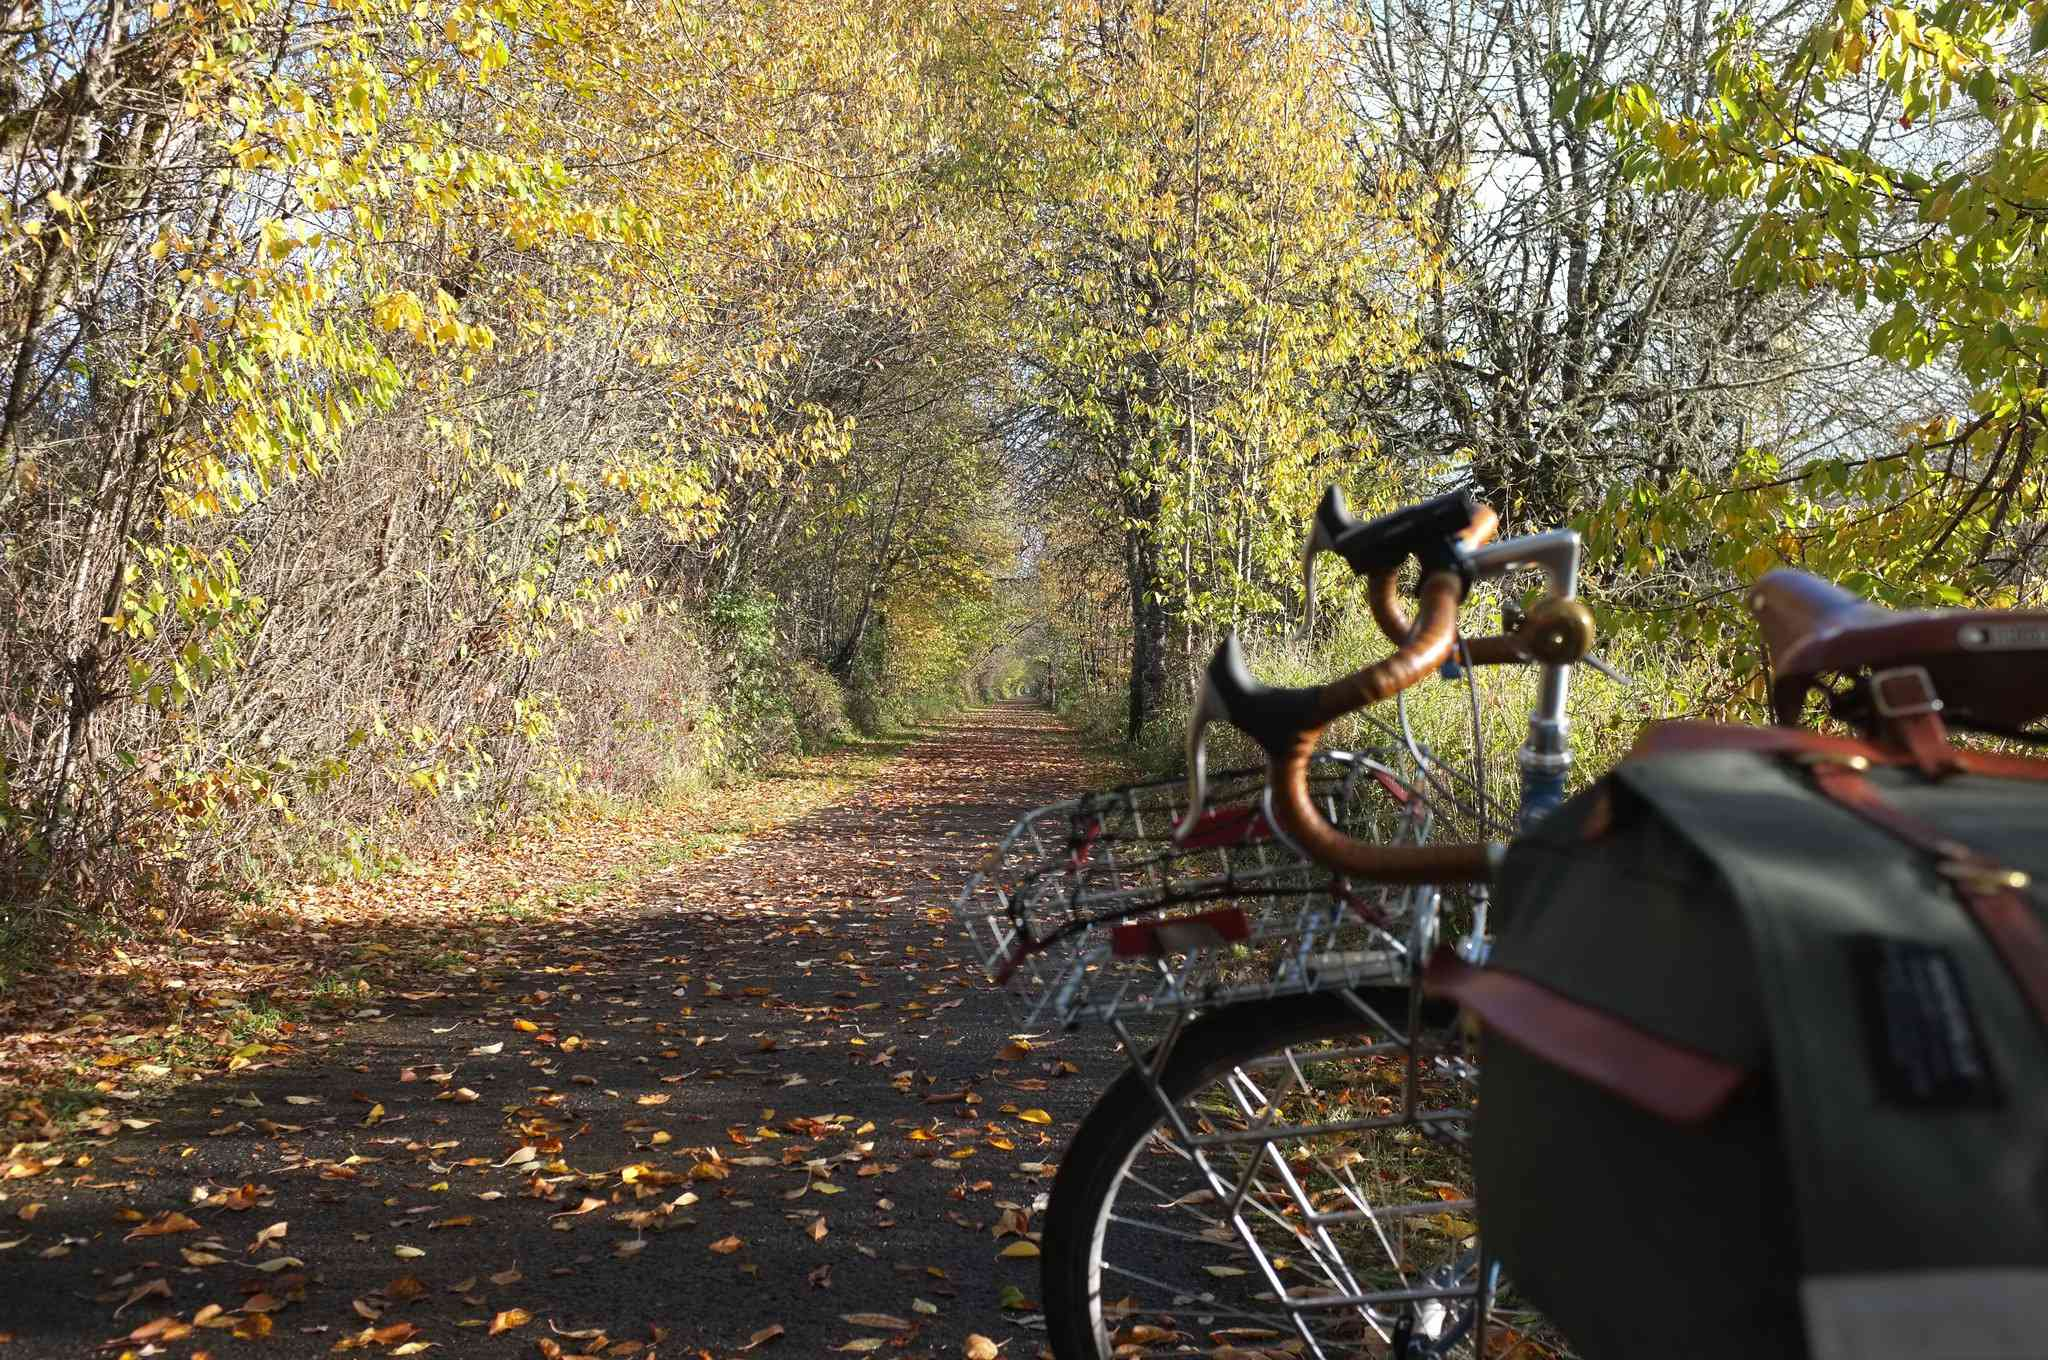 A touring bicycle on a paved bike path in a forest